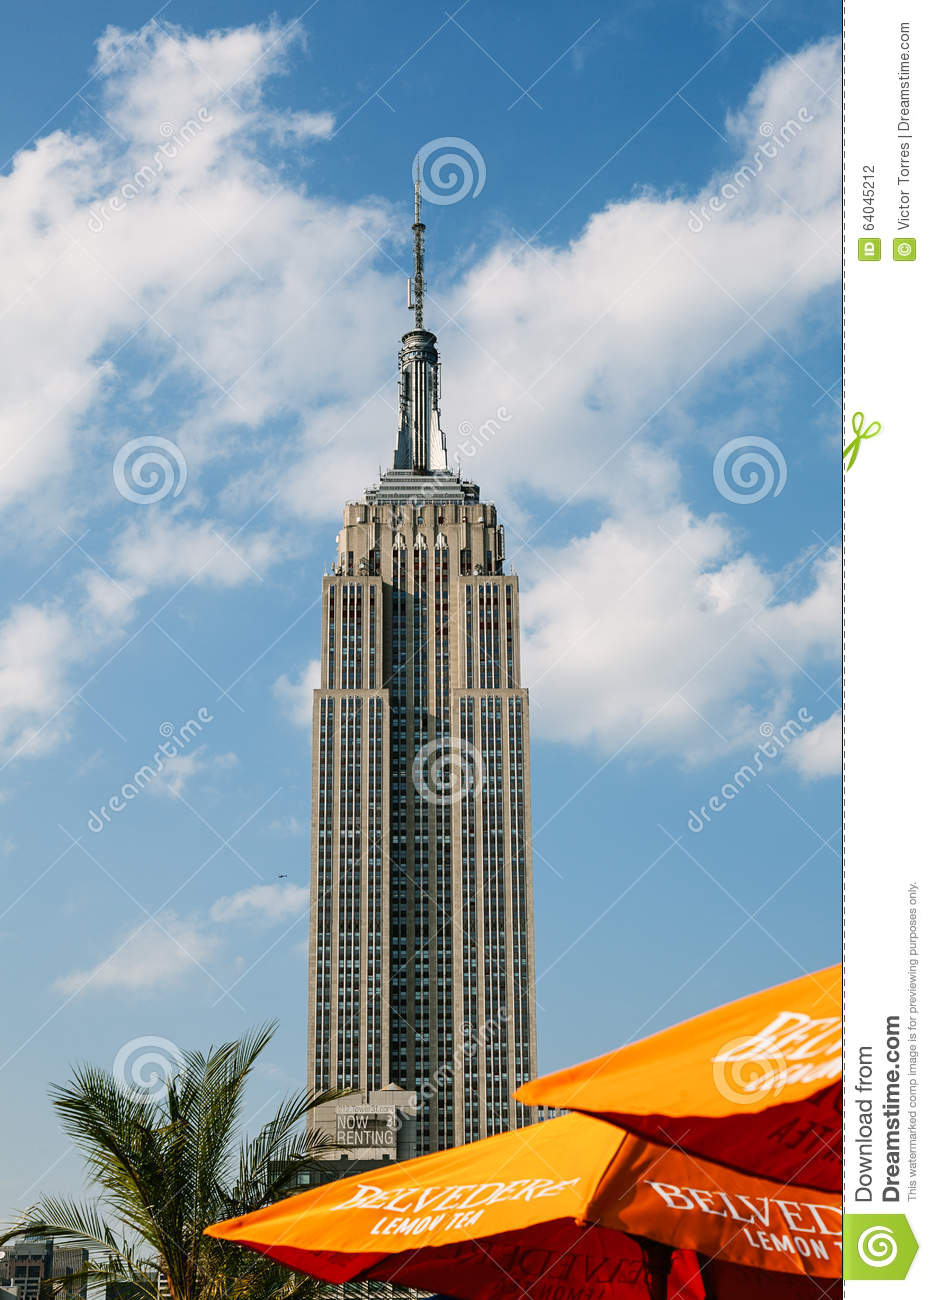 The empire state building new york city editorial for Iconic new york landmarks